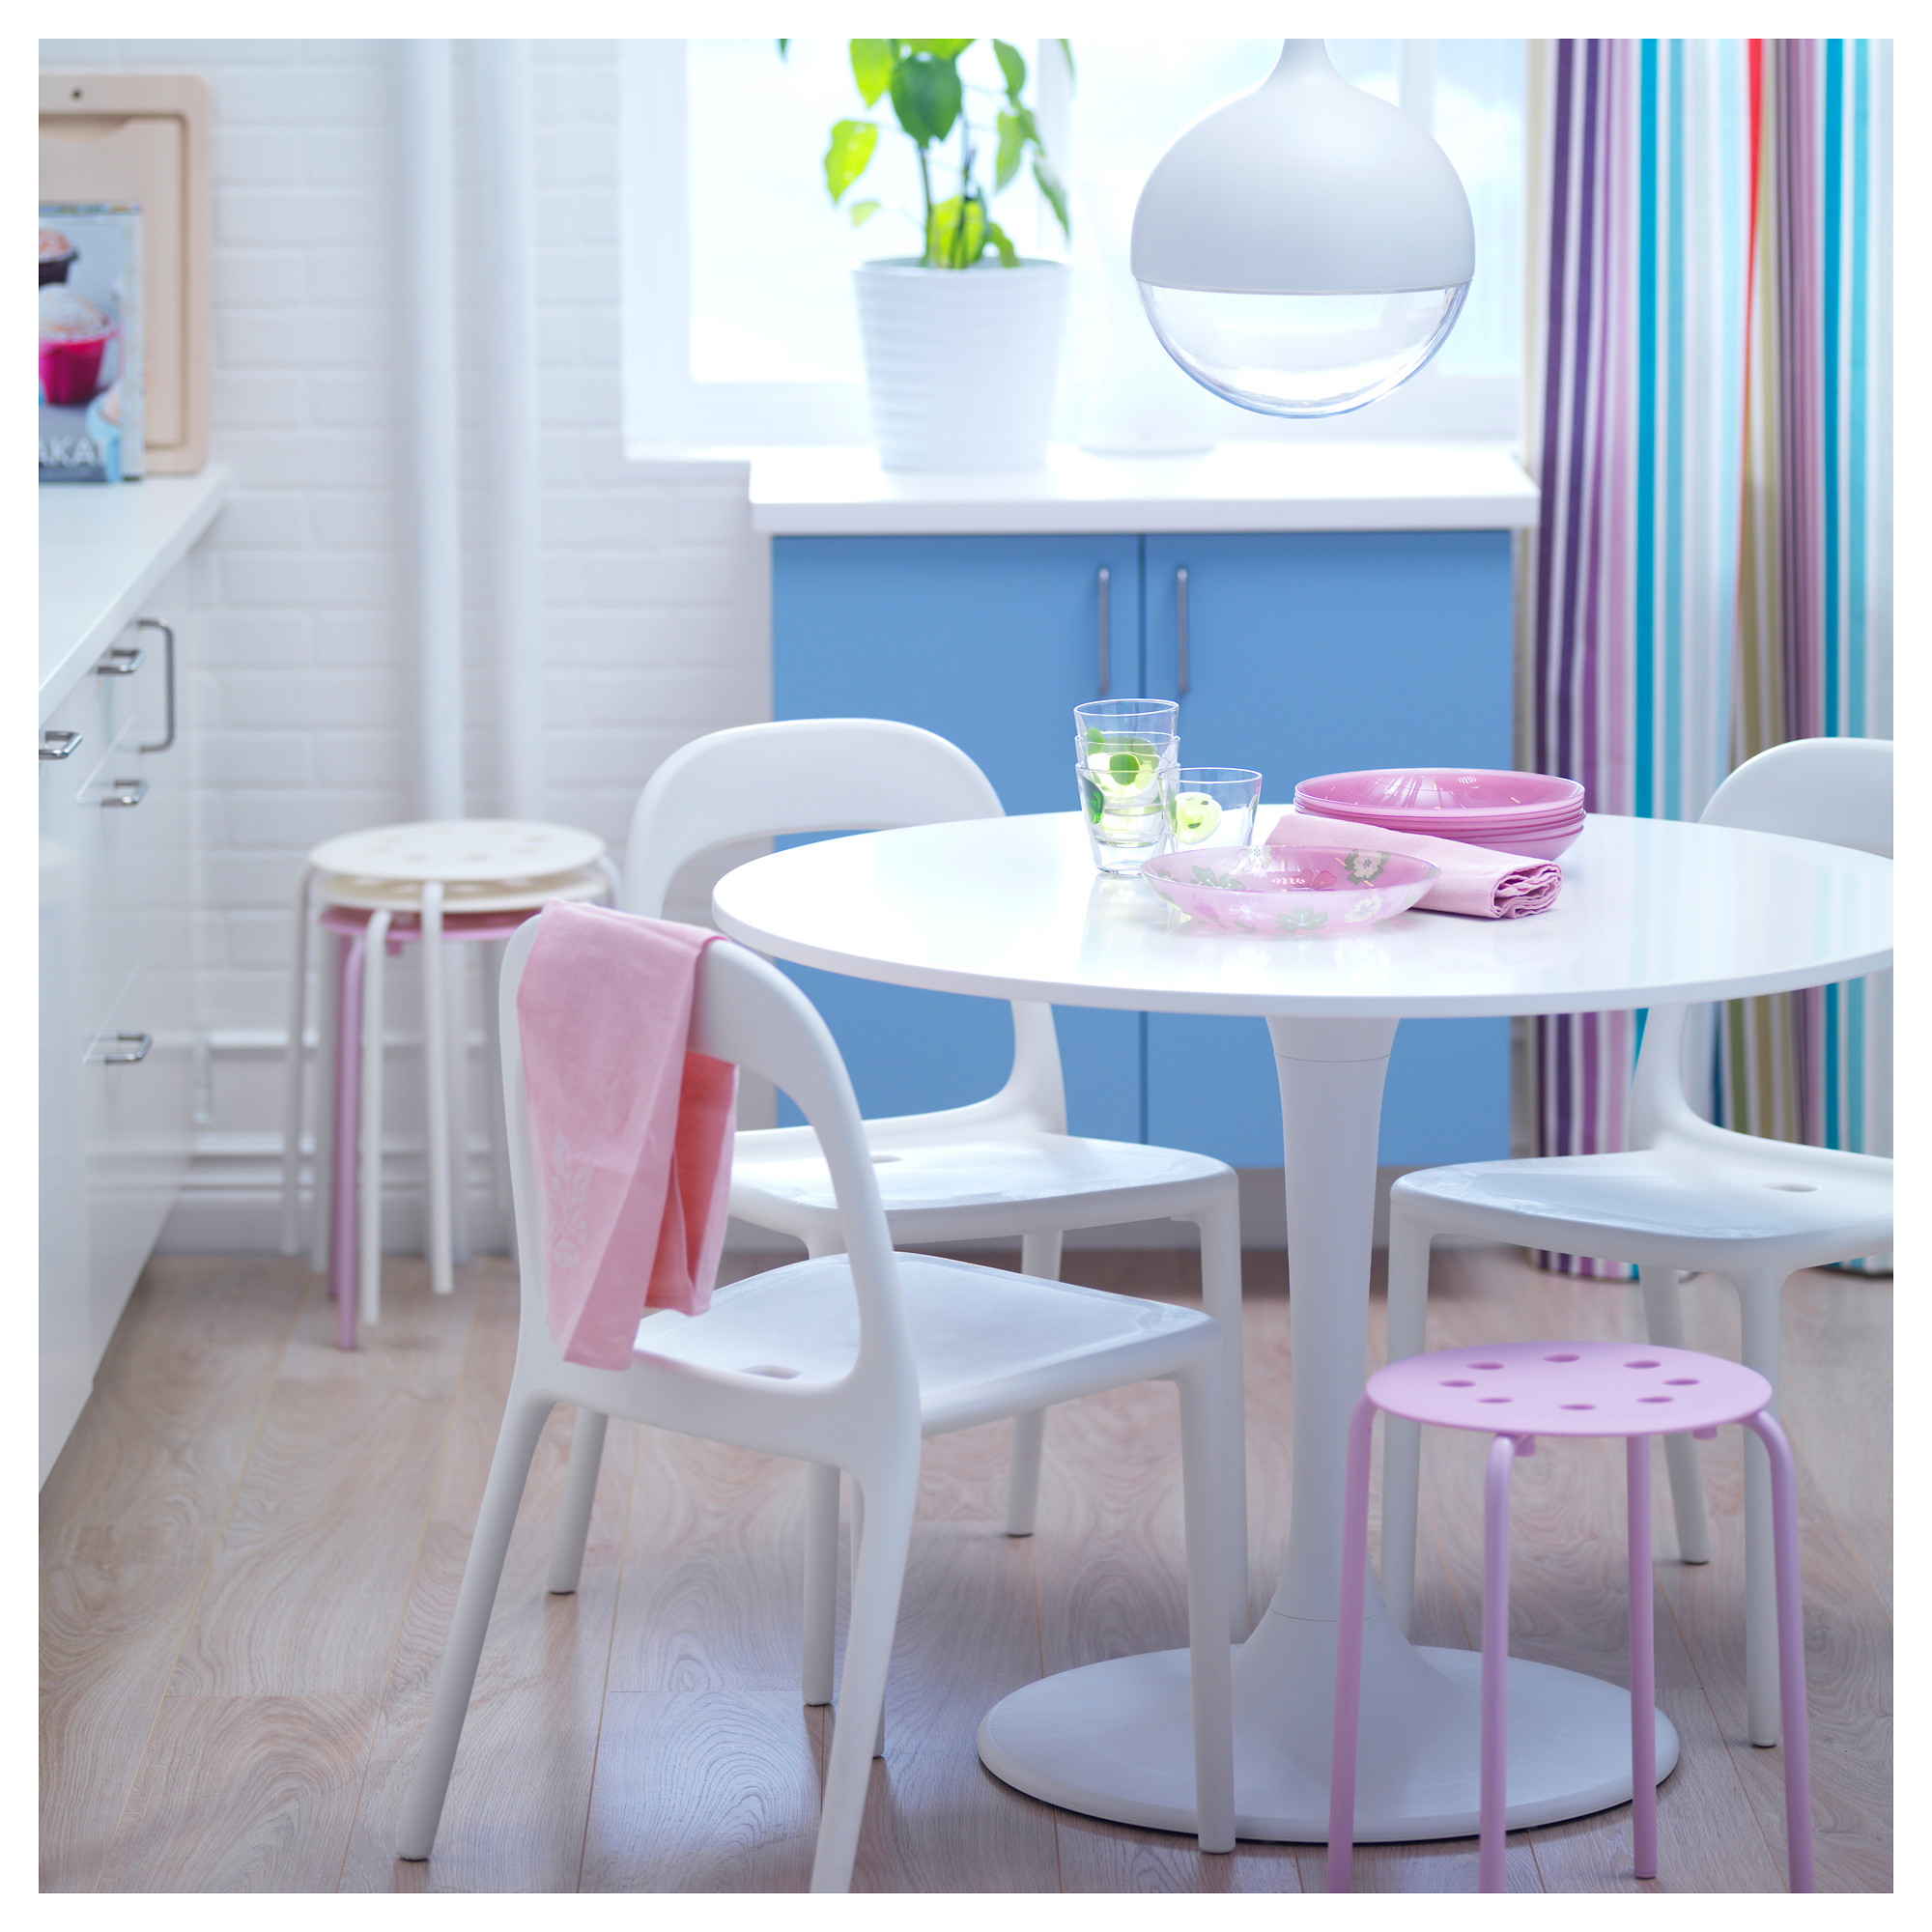 colorful kitchen table slide out modern ikea tulip homesfeed